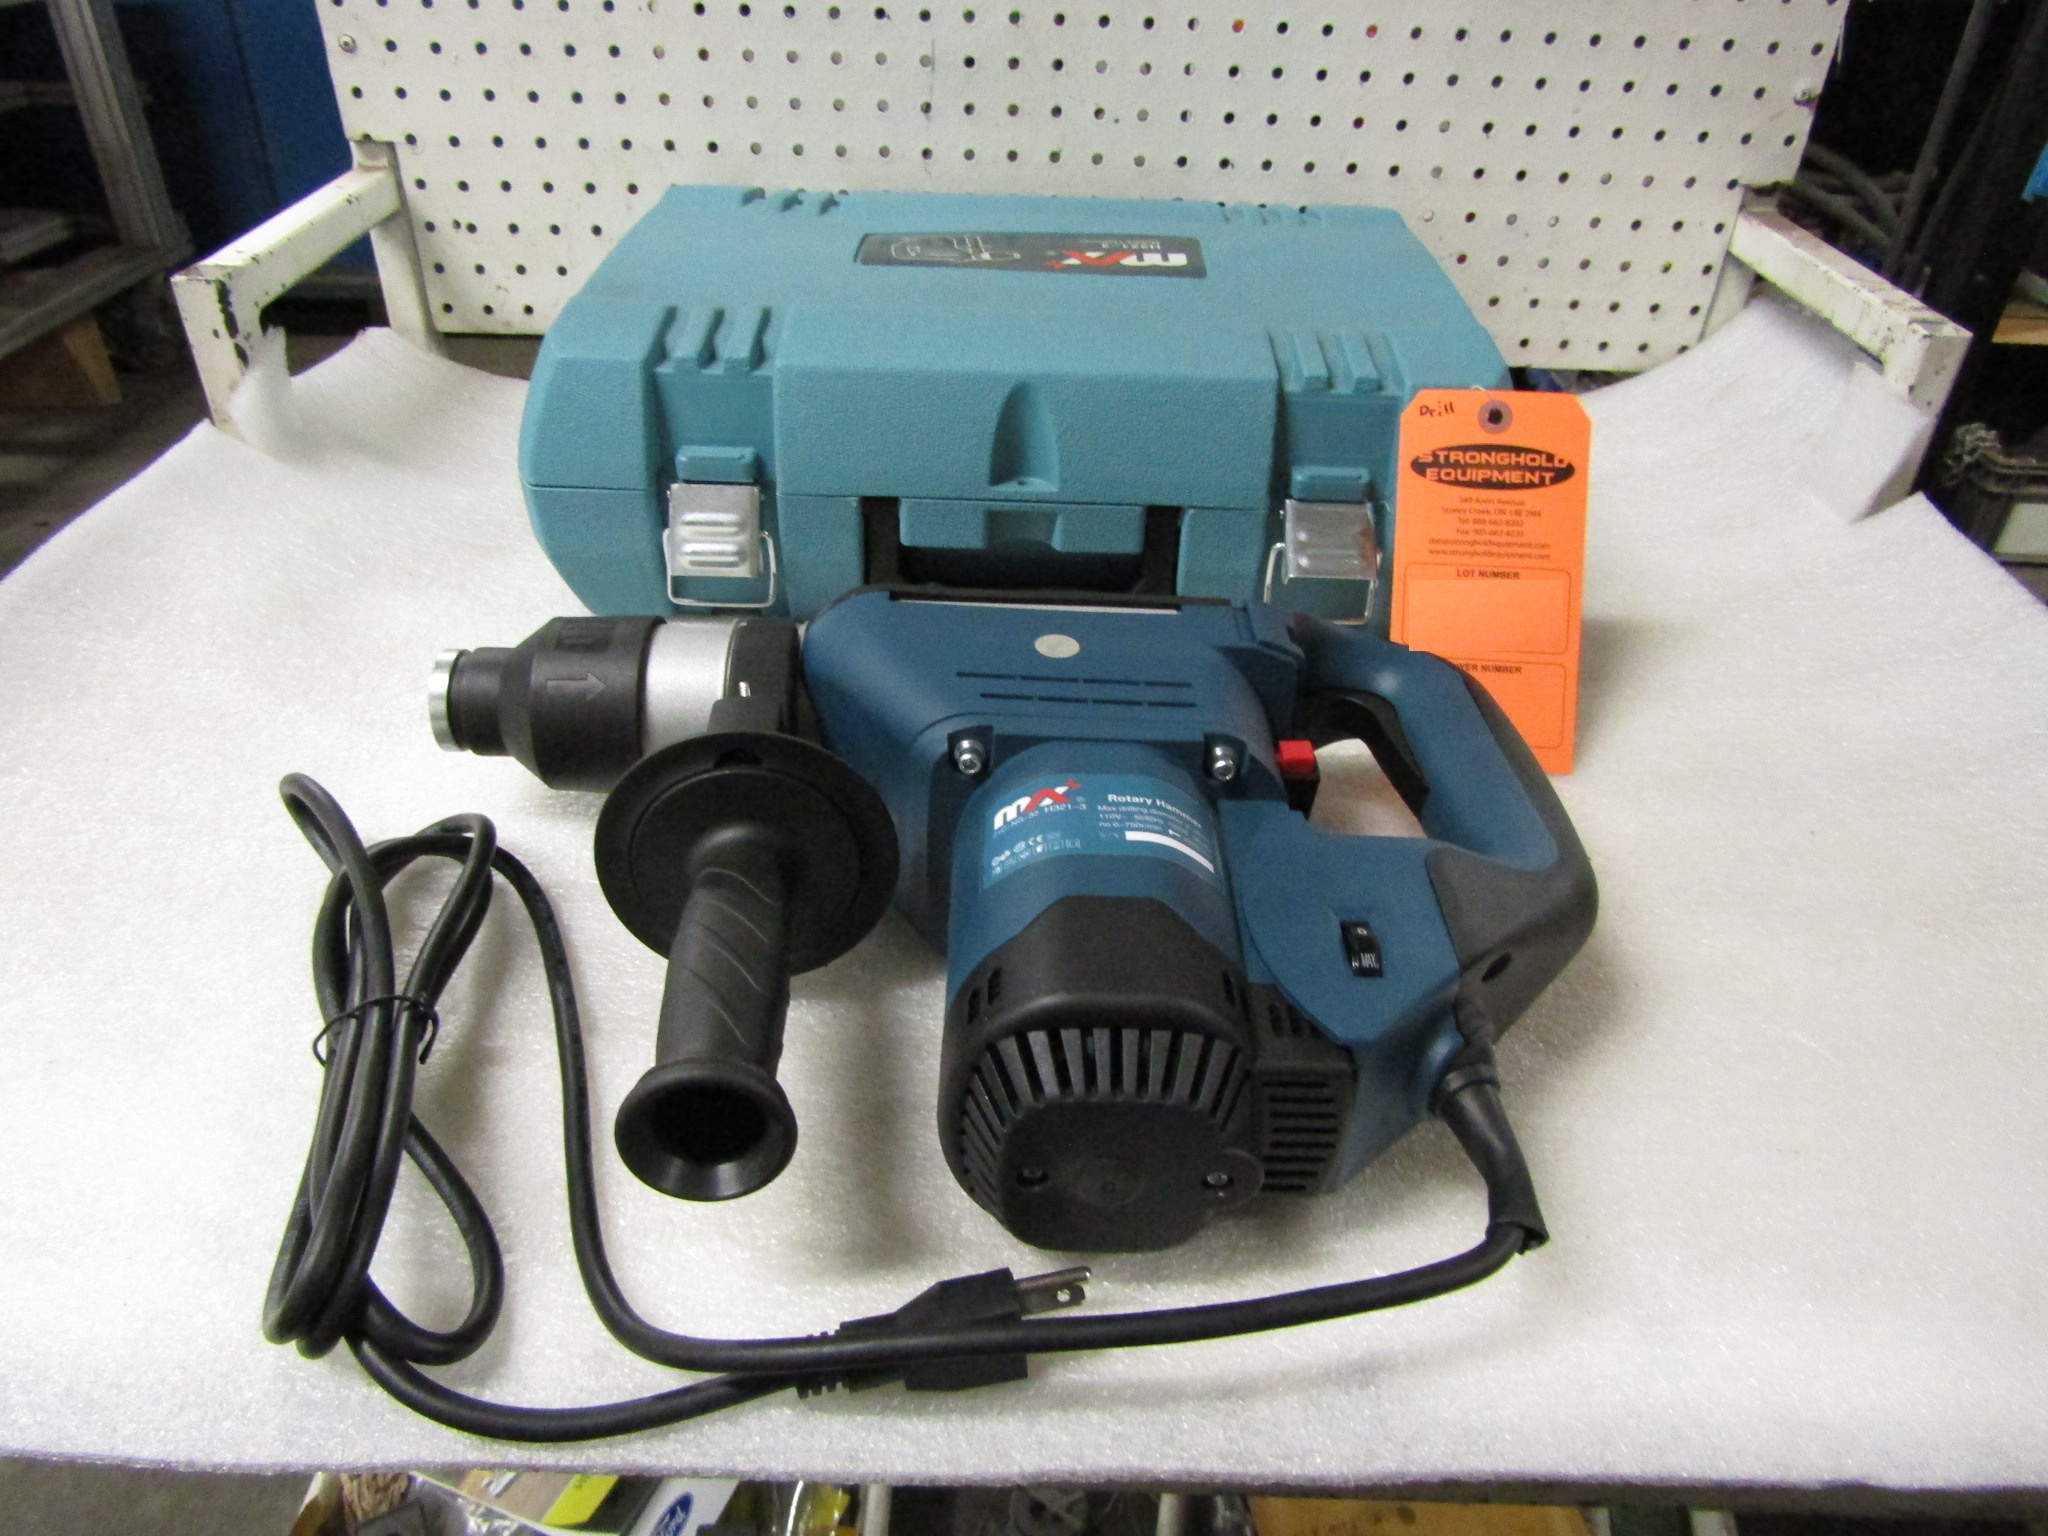 """Lot 21 - BRAND NEW Max Electric Rotary Hammer unit with 32mm / 1.25"""" max drilling diameter - model H-321"""